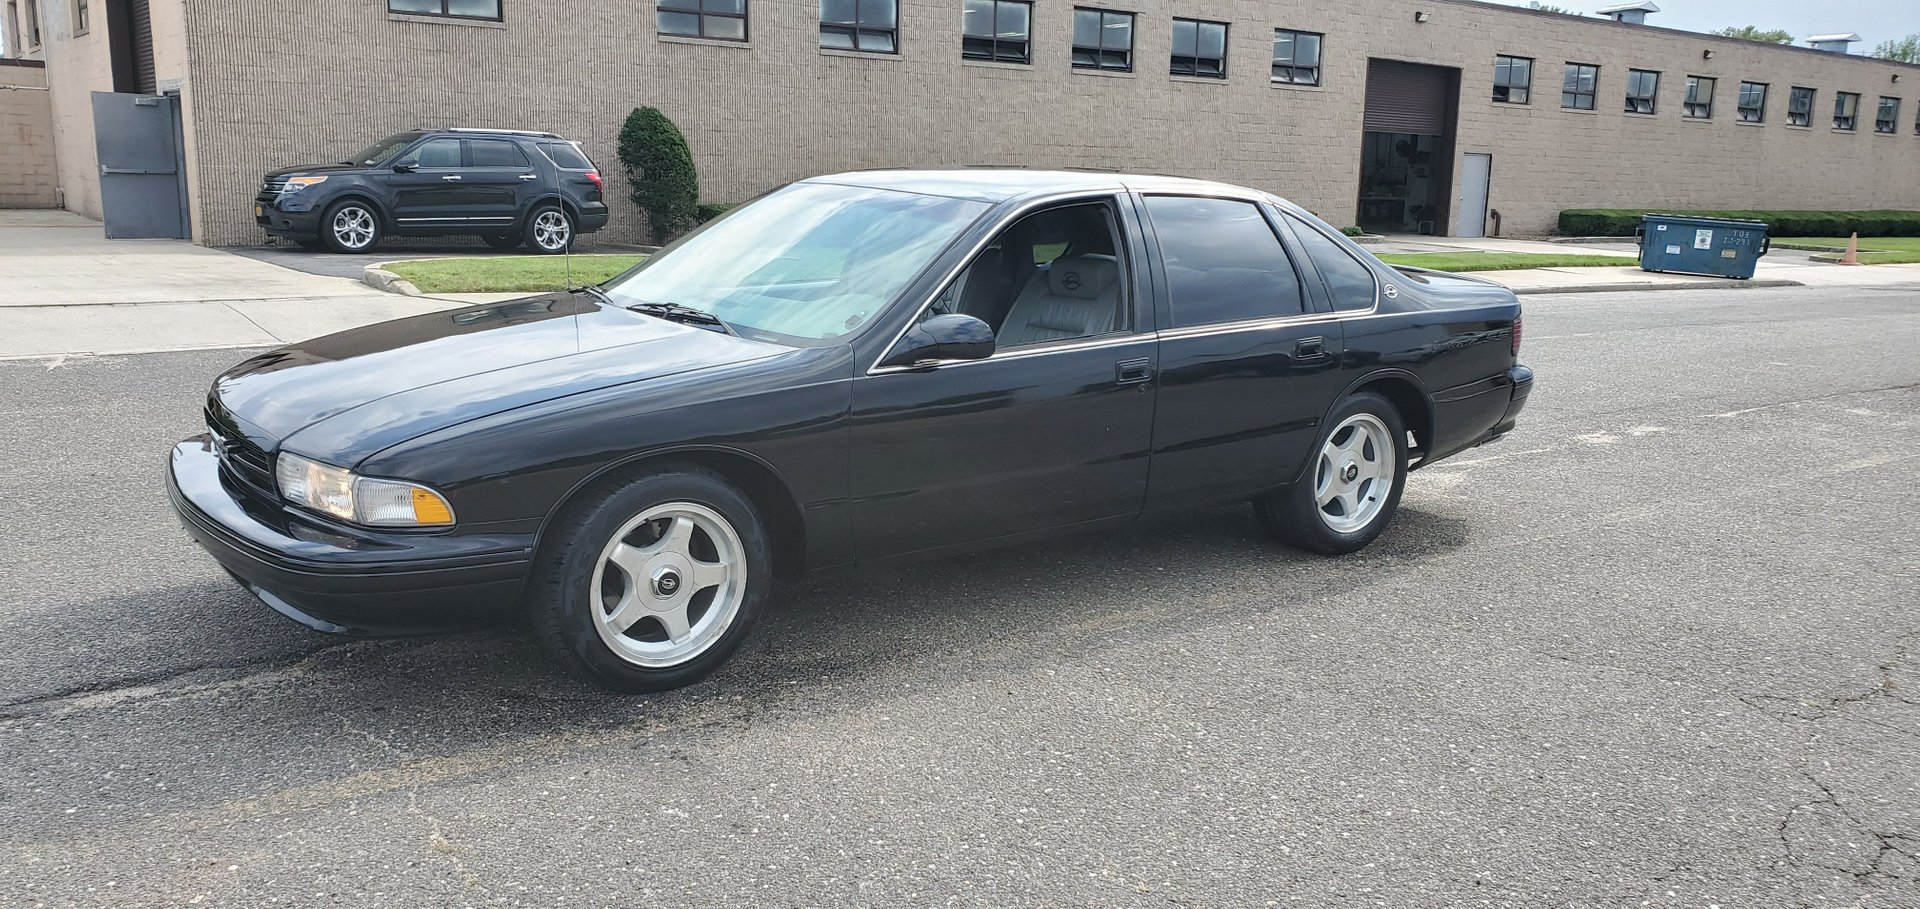 1996 Chevrolet Impala SS for sale #65049 | Motorious